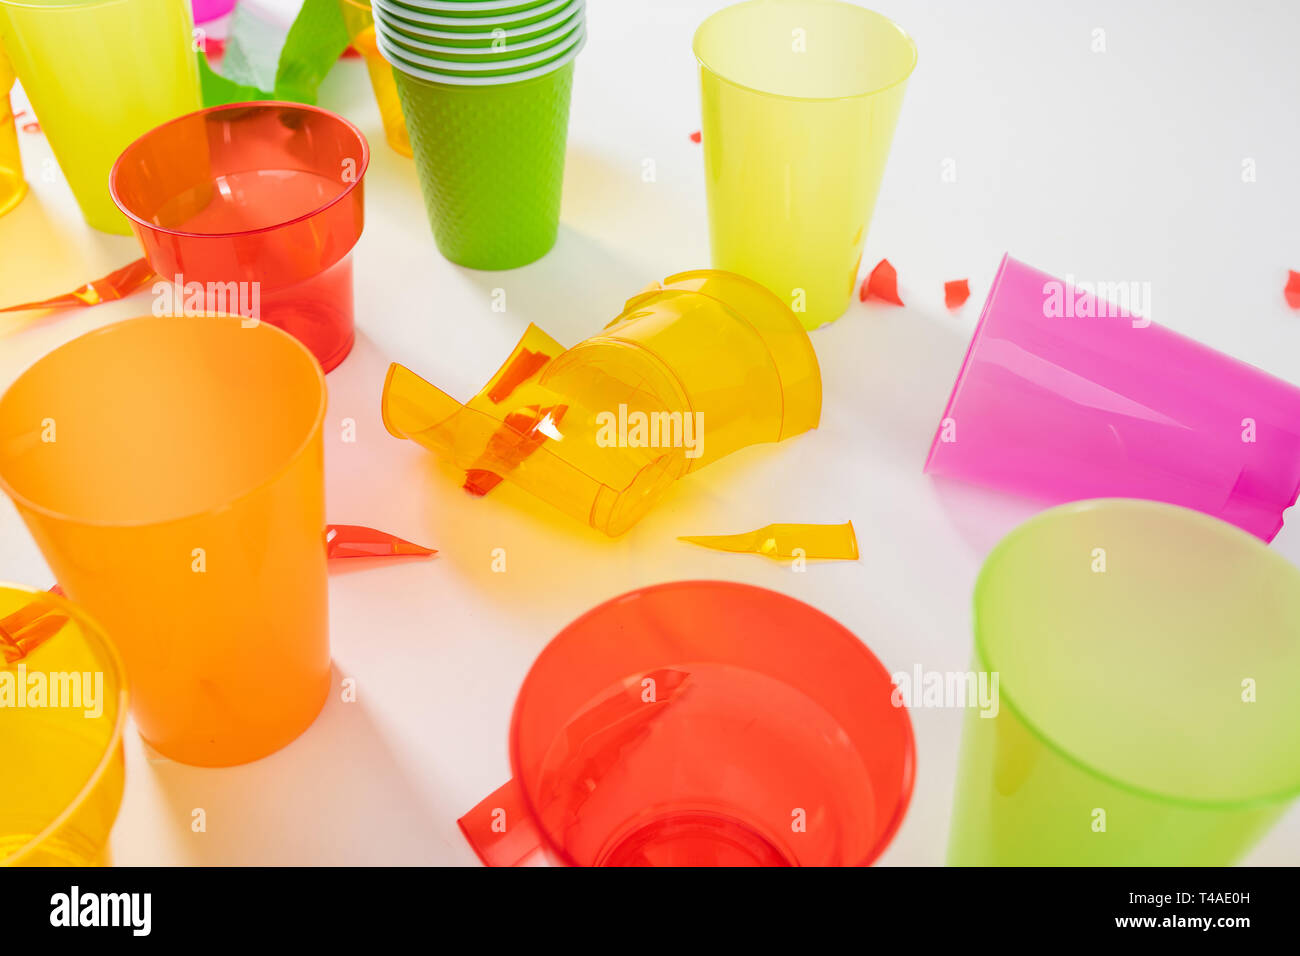 Broken plastic cups with sharp pieces standing together